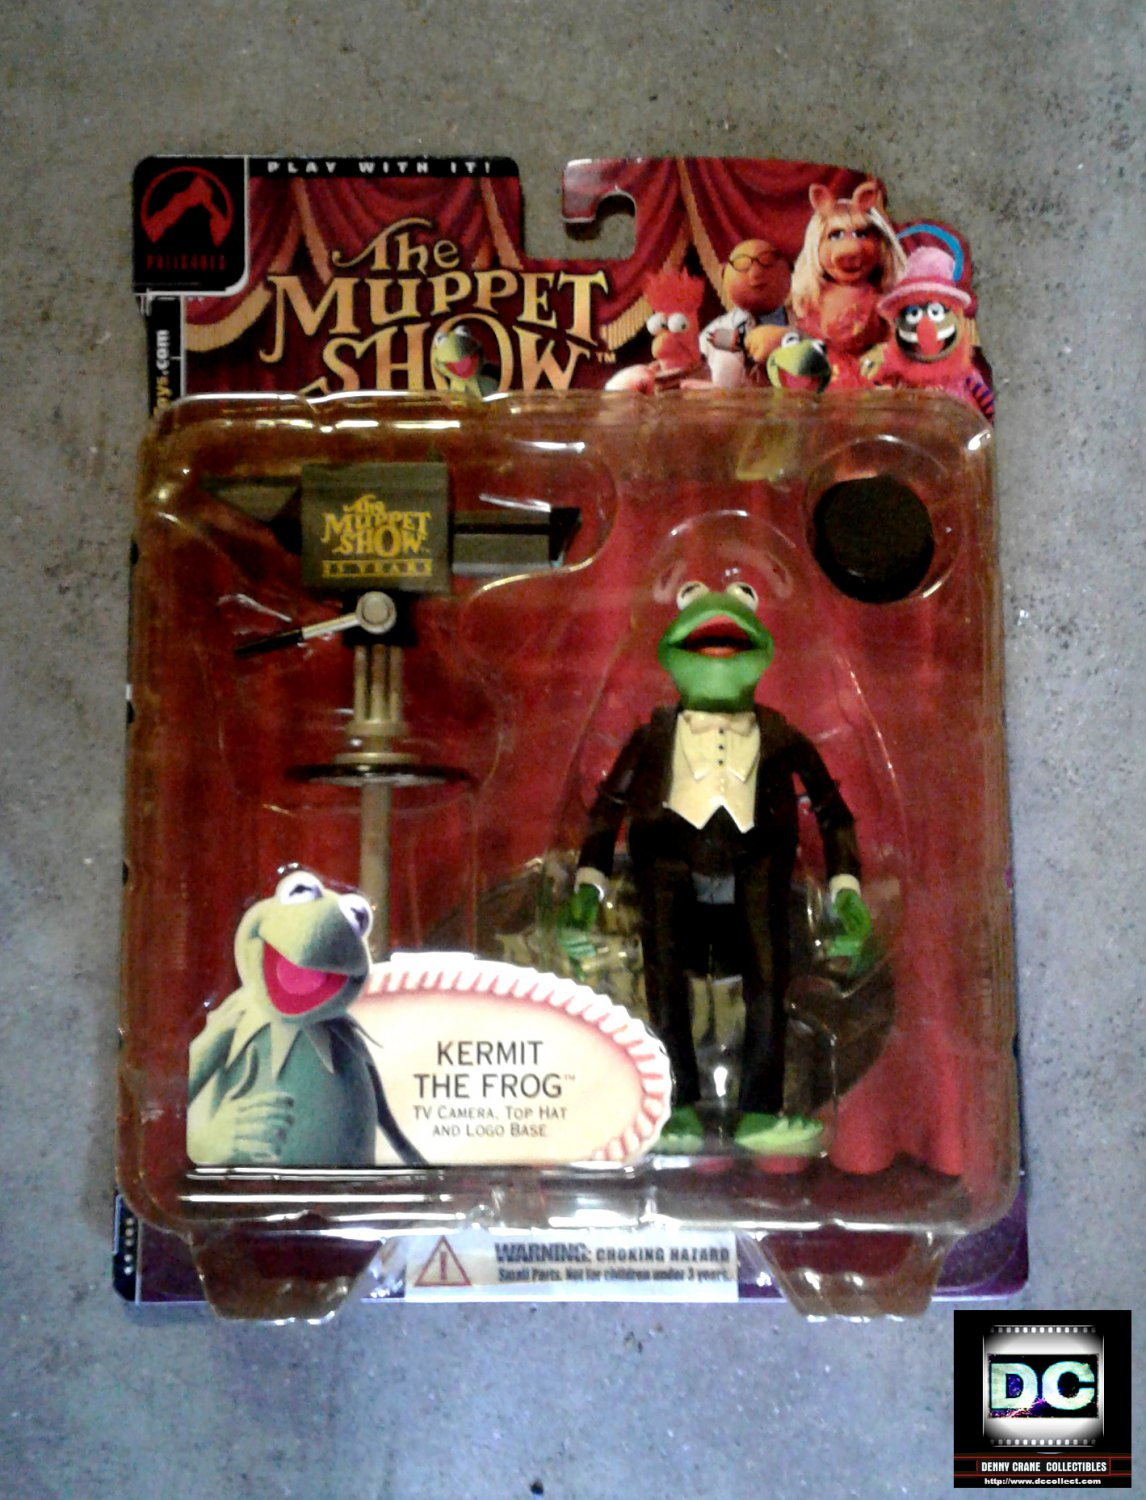 Muppets Palisades Exclusive Kermit the Frog Series 1 Tuxedo Figure - Jim Henson 25th Anniversary